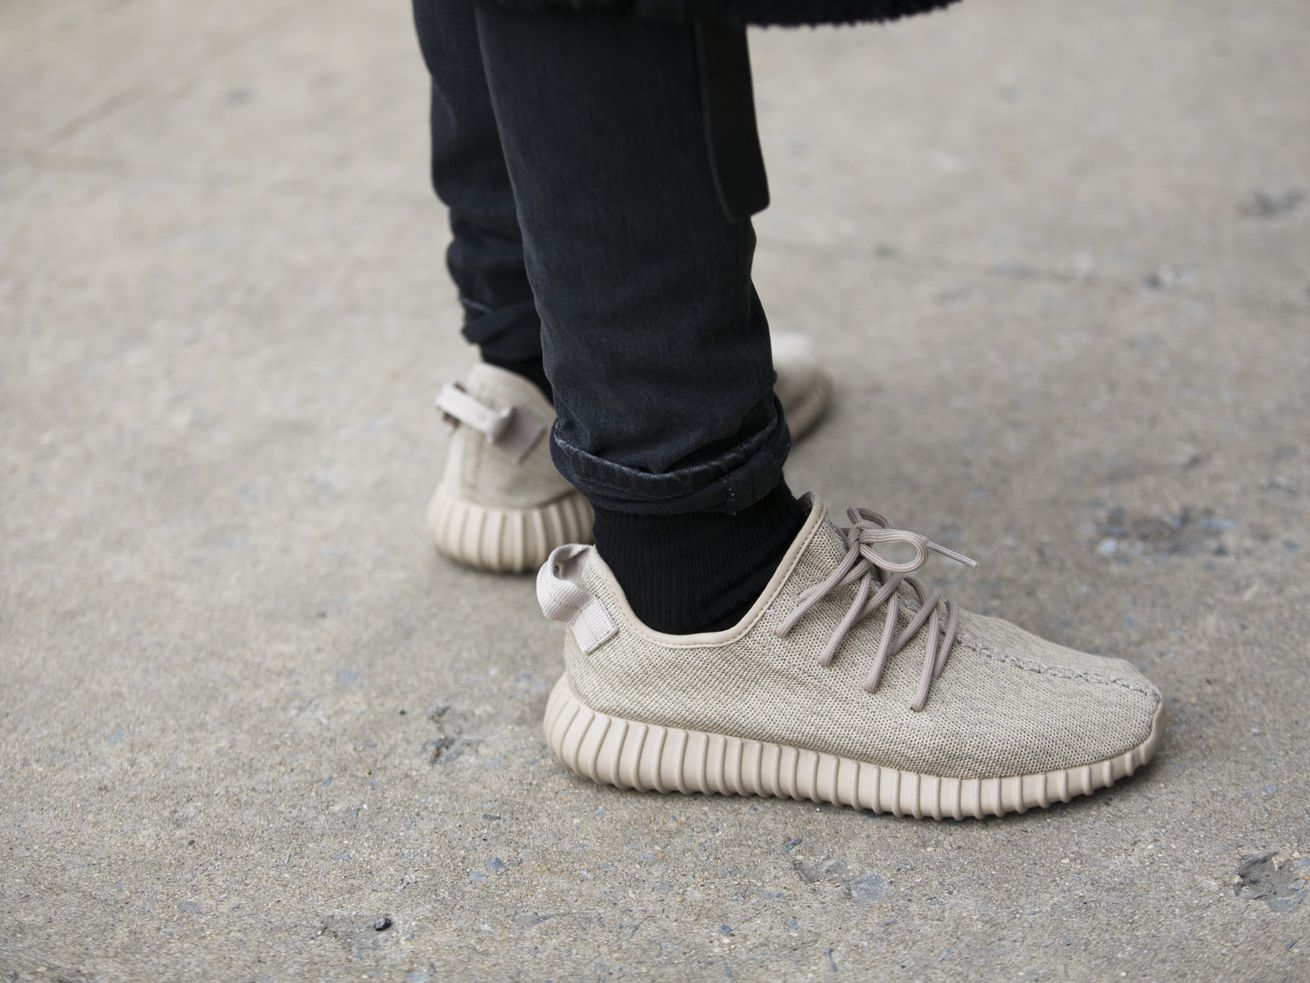 The Adidas Yeezy sneakers have consistently sold out since the first pair debuted in 2015.